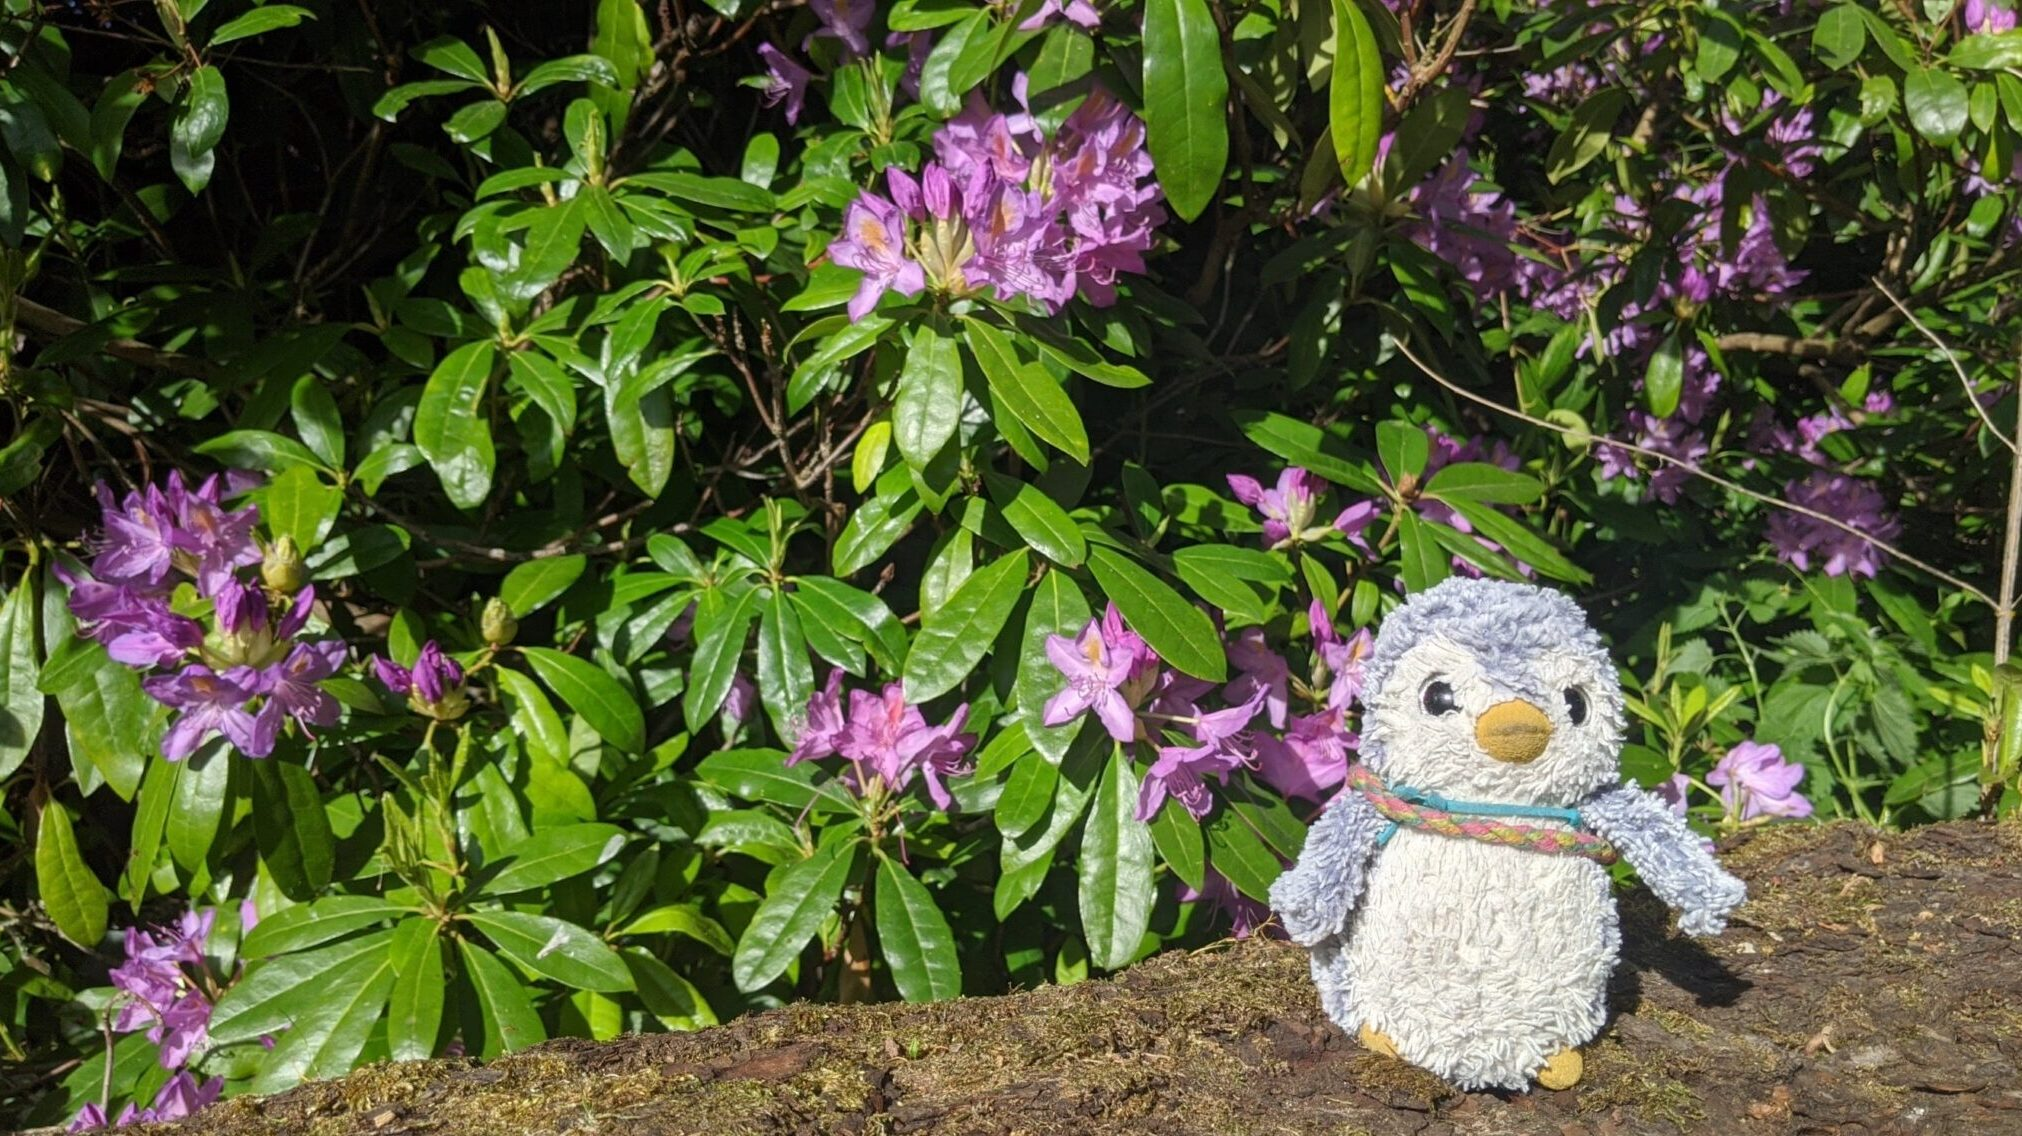 Arnold with purple flowers